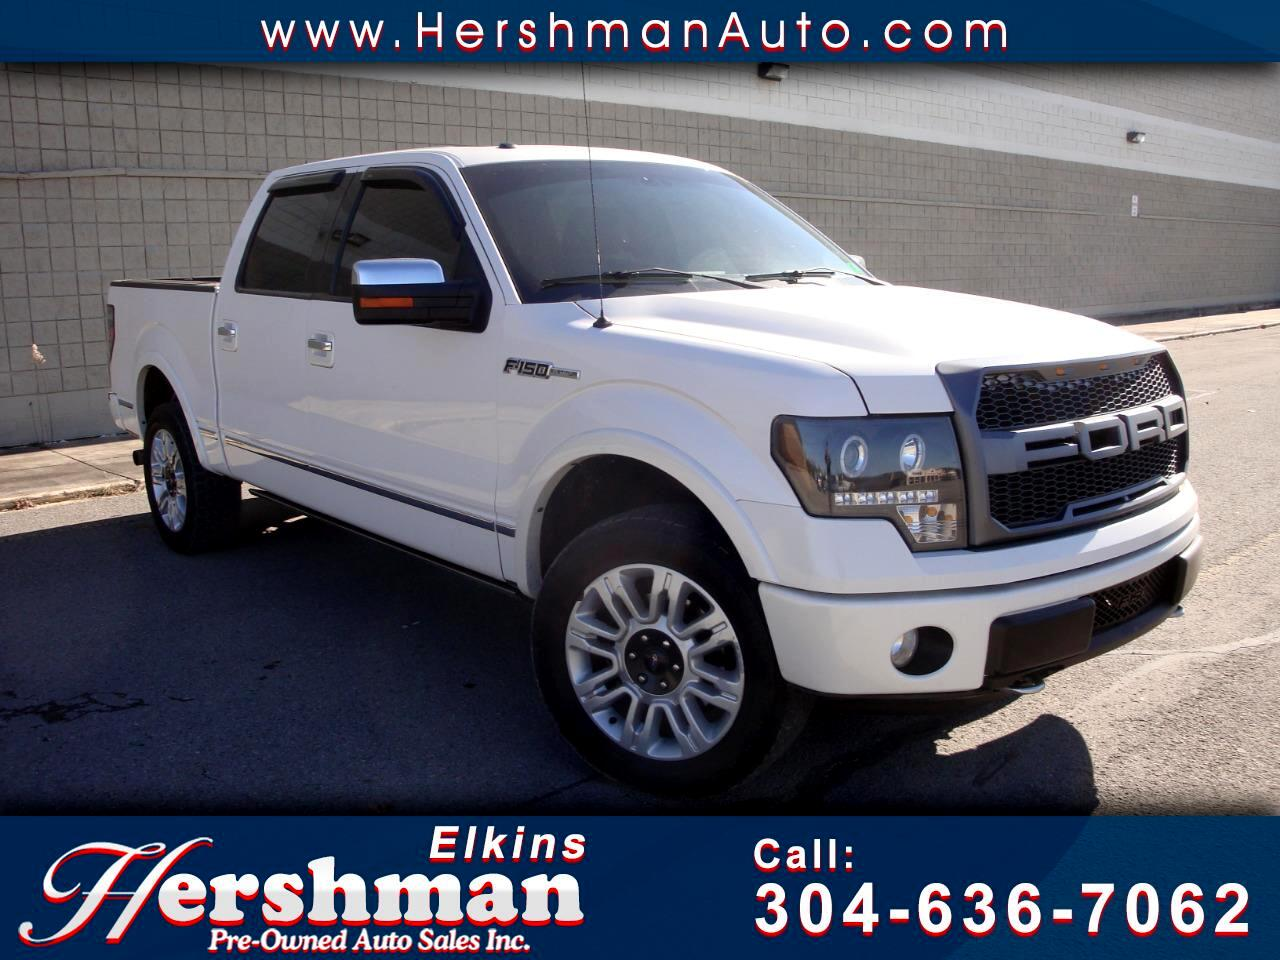 2010 Ford F-150 SUPER CREW PLATINUM